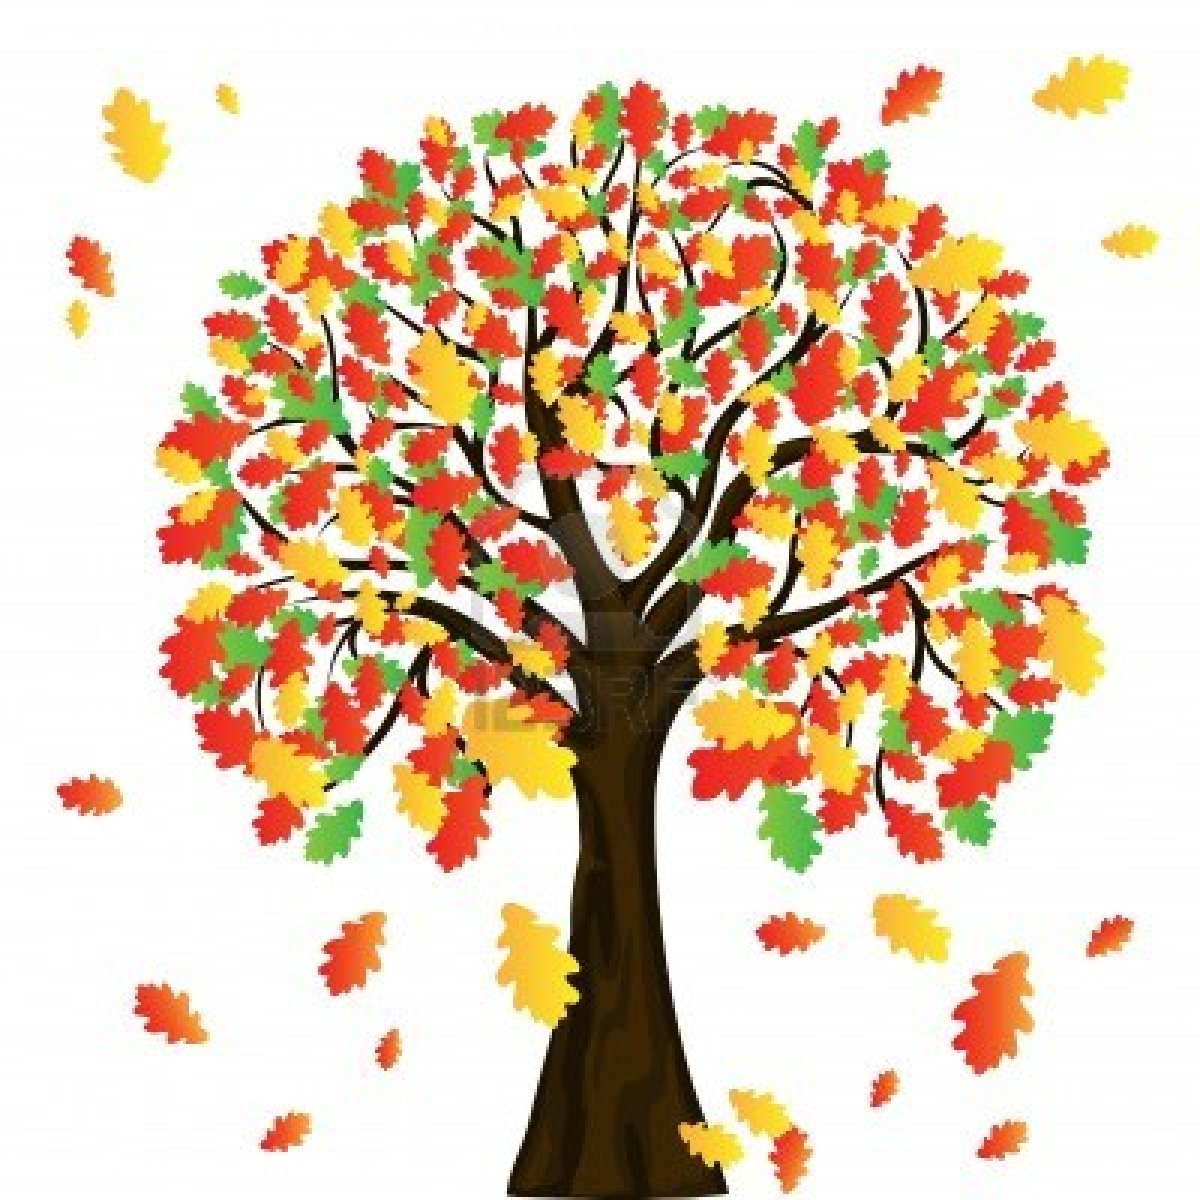 Autumn tree clipart free.